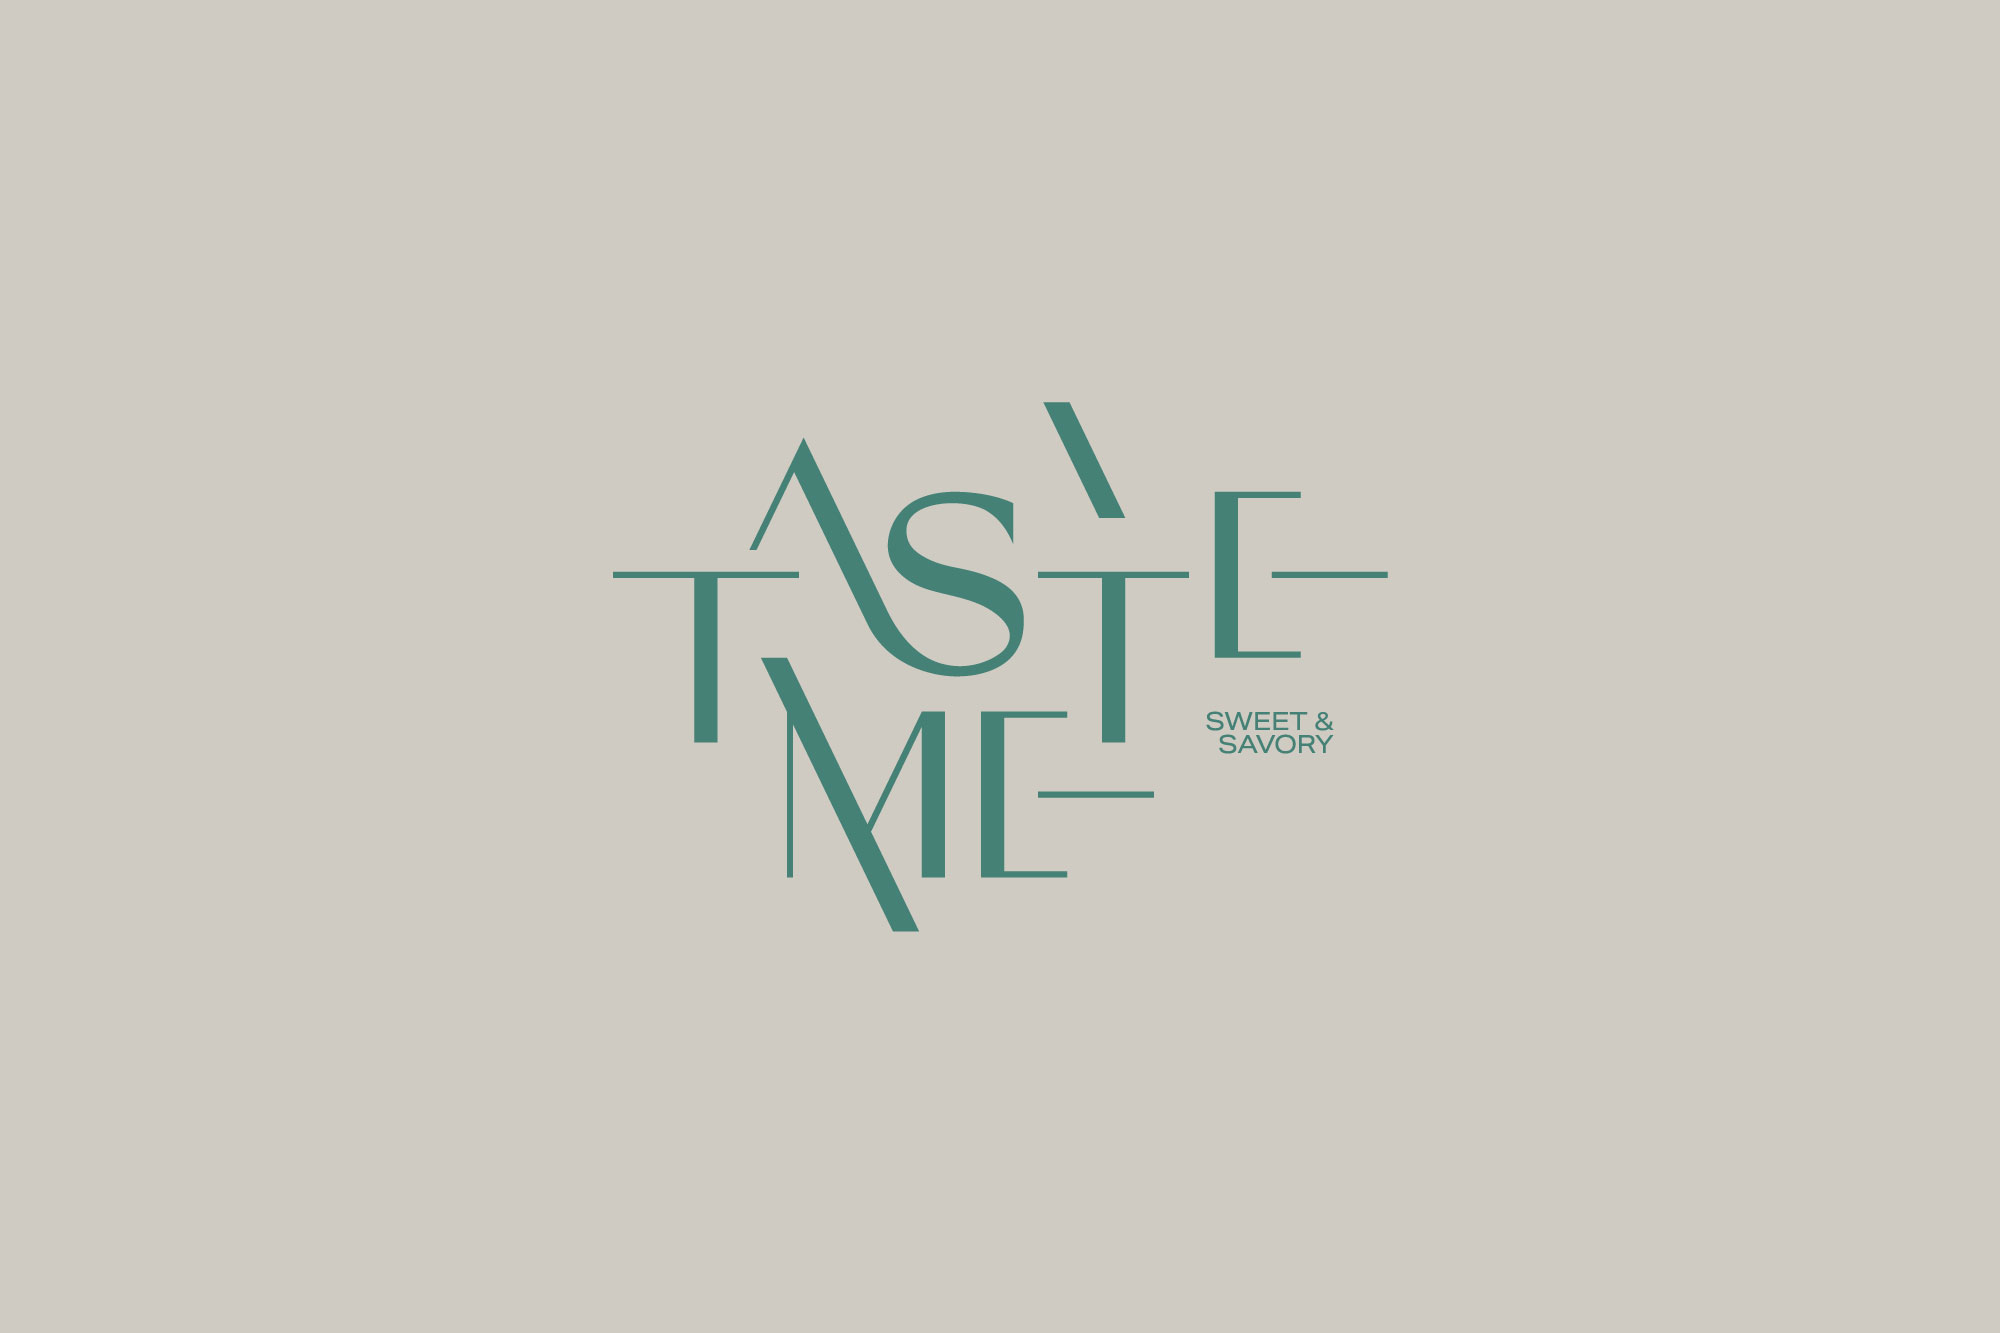 Tasteme-Logo-Work-by-YaStudio-01